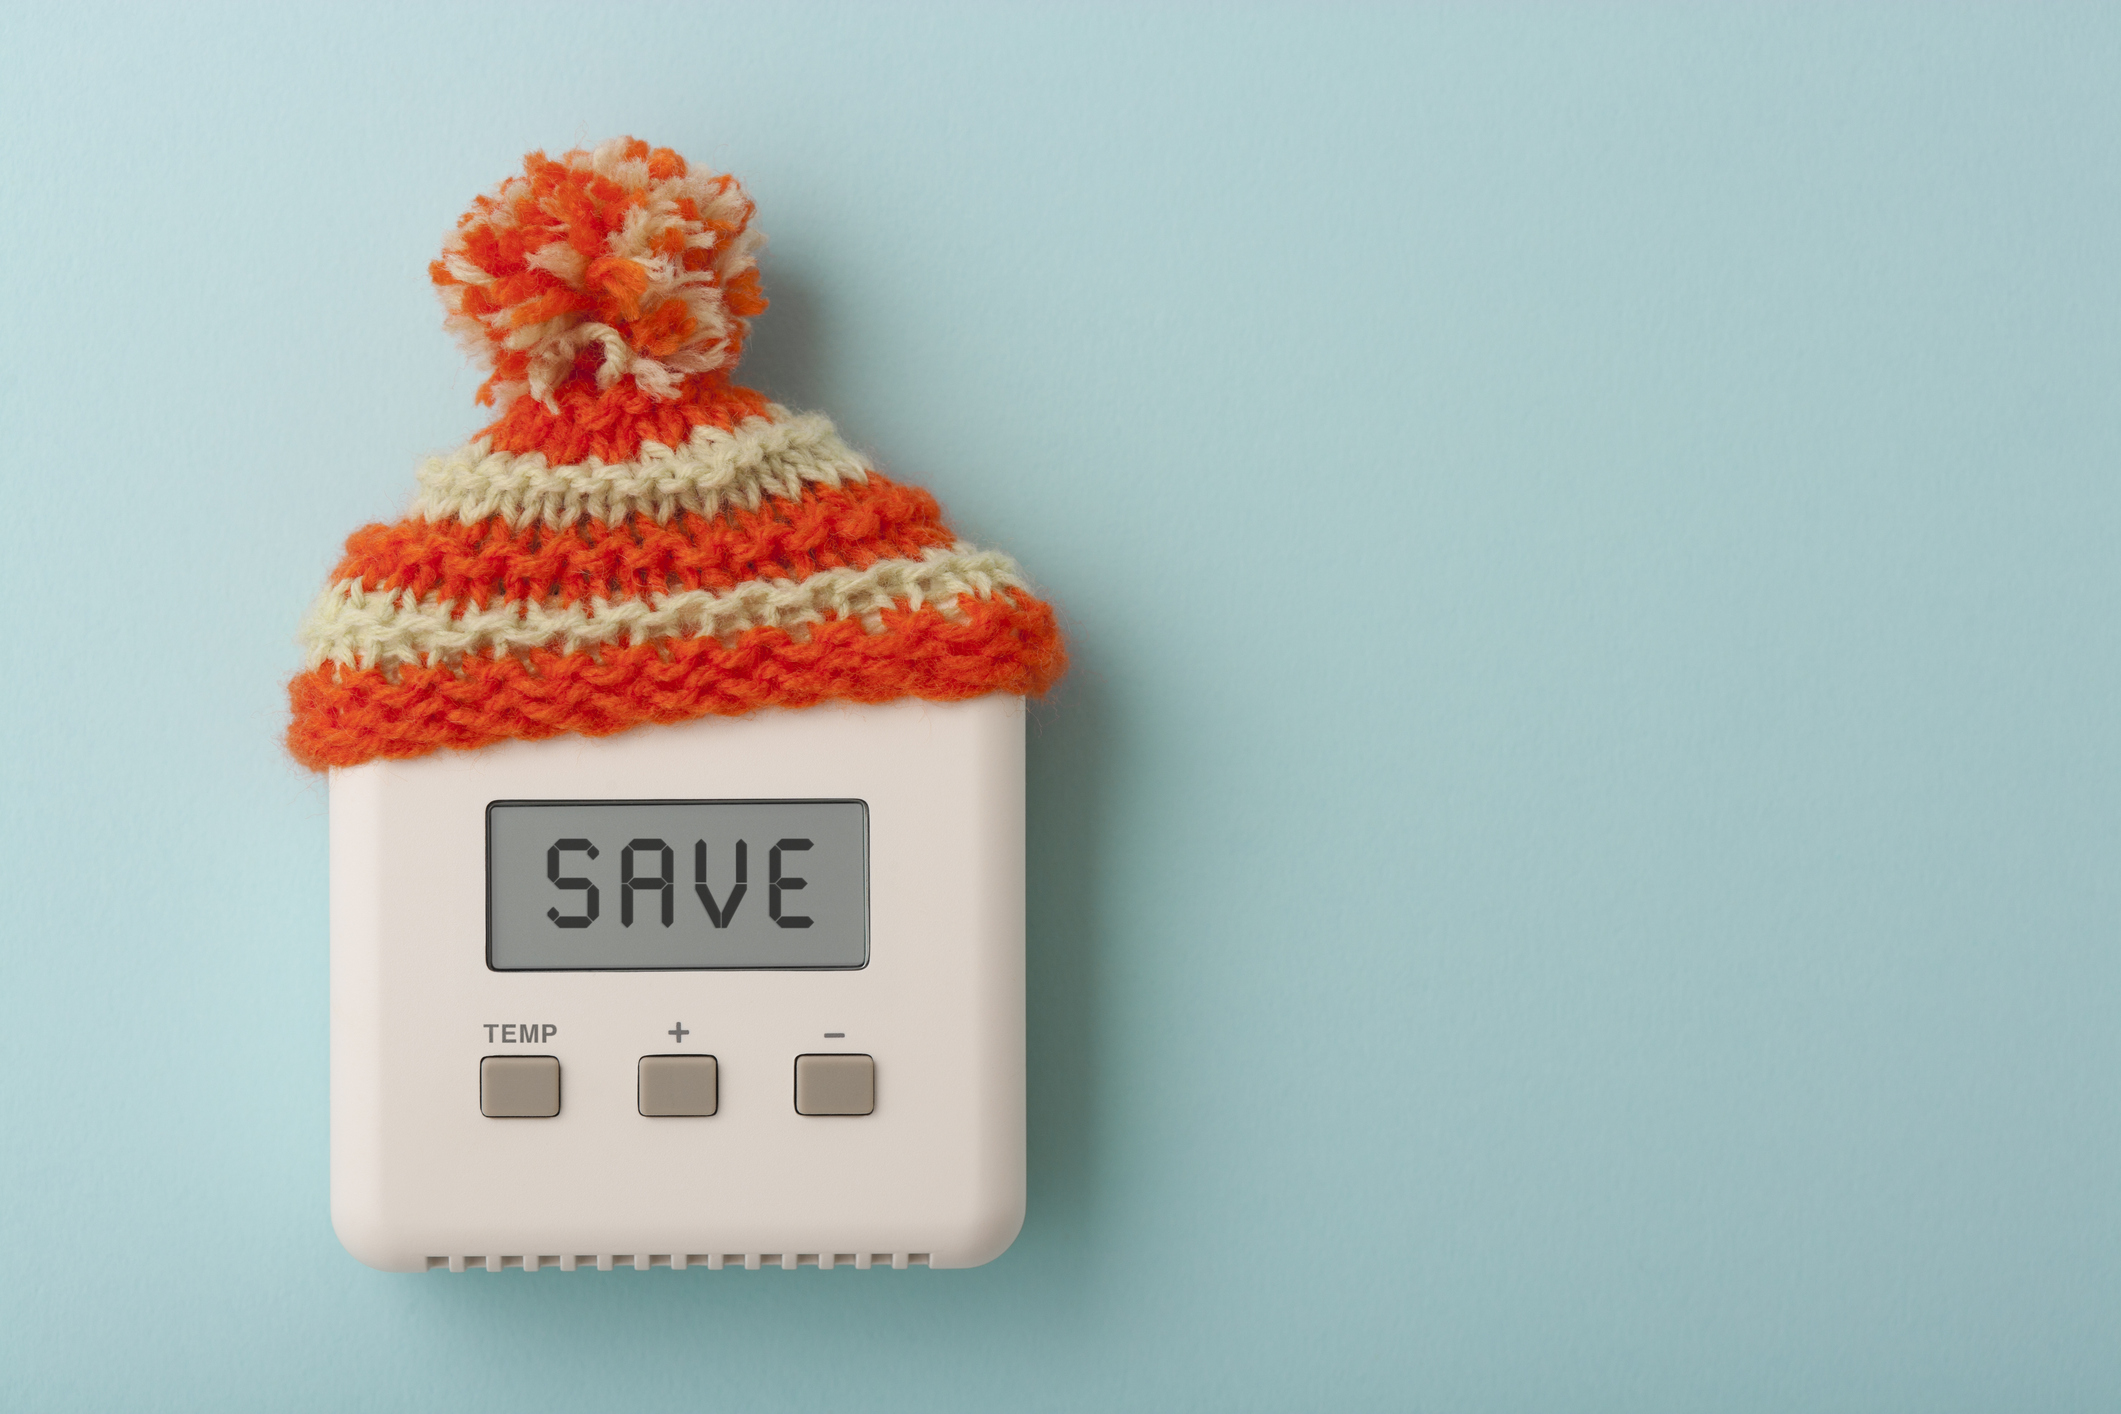 Saving on Heating Bills